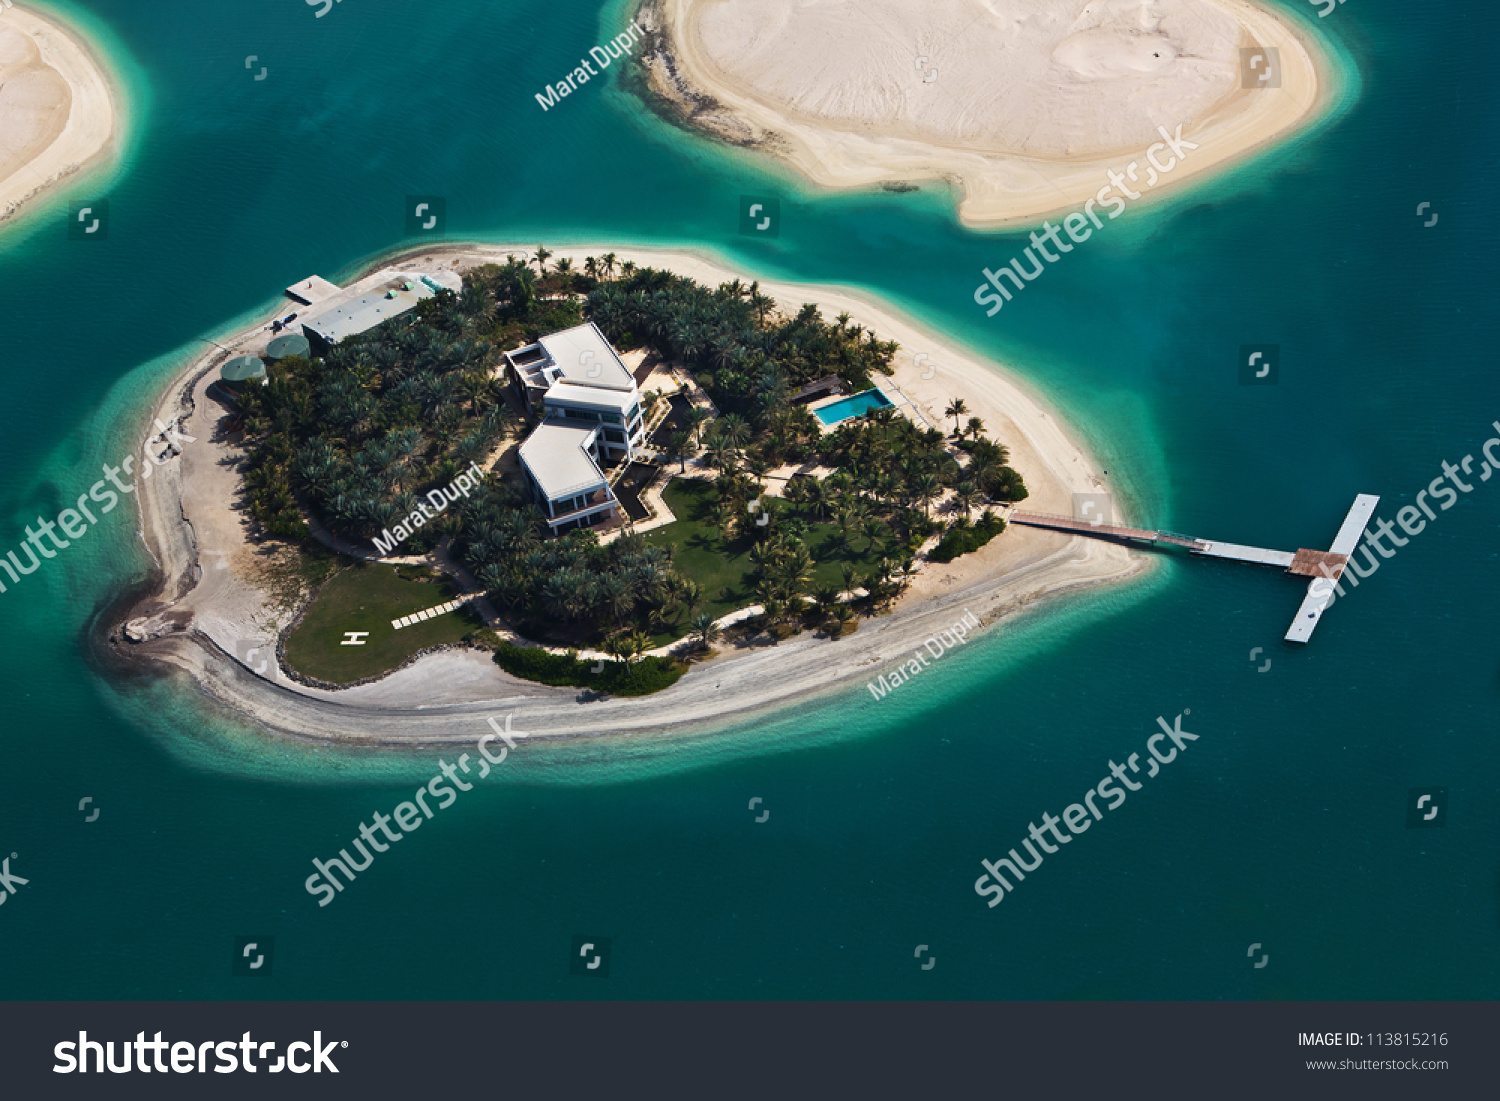 Island dubai on world map islands stock photo download now island in the dubai on the world map islands gumiabroncs Choice Image